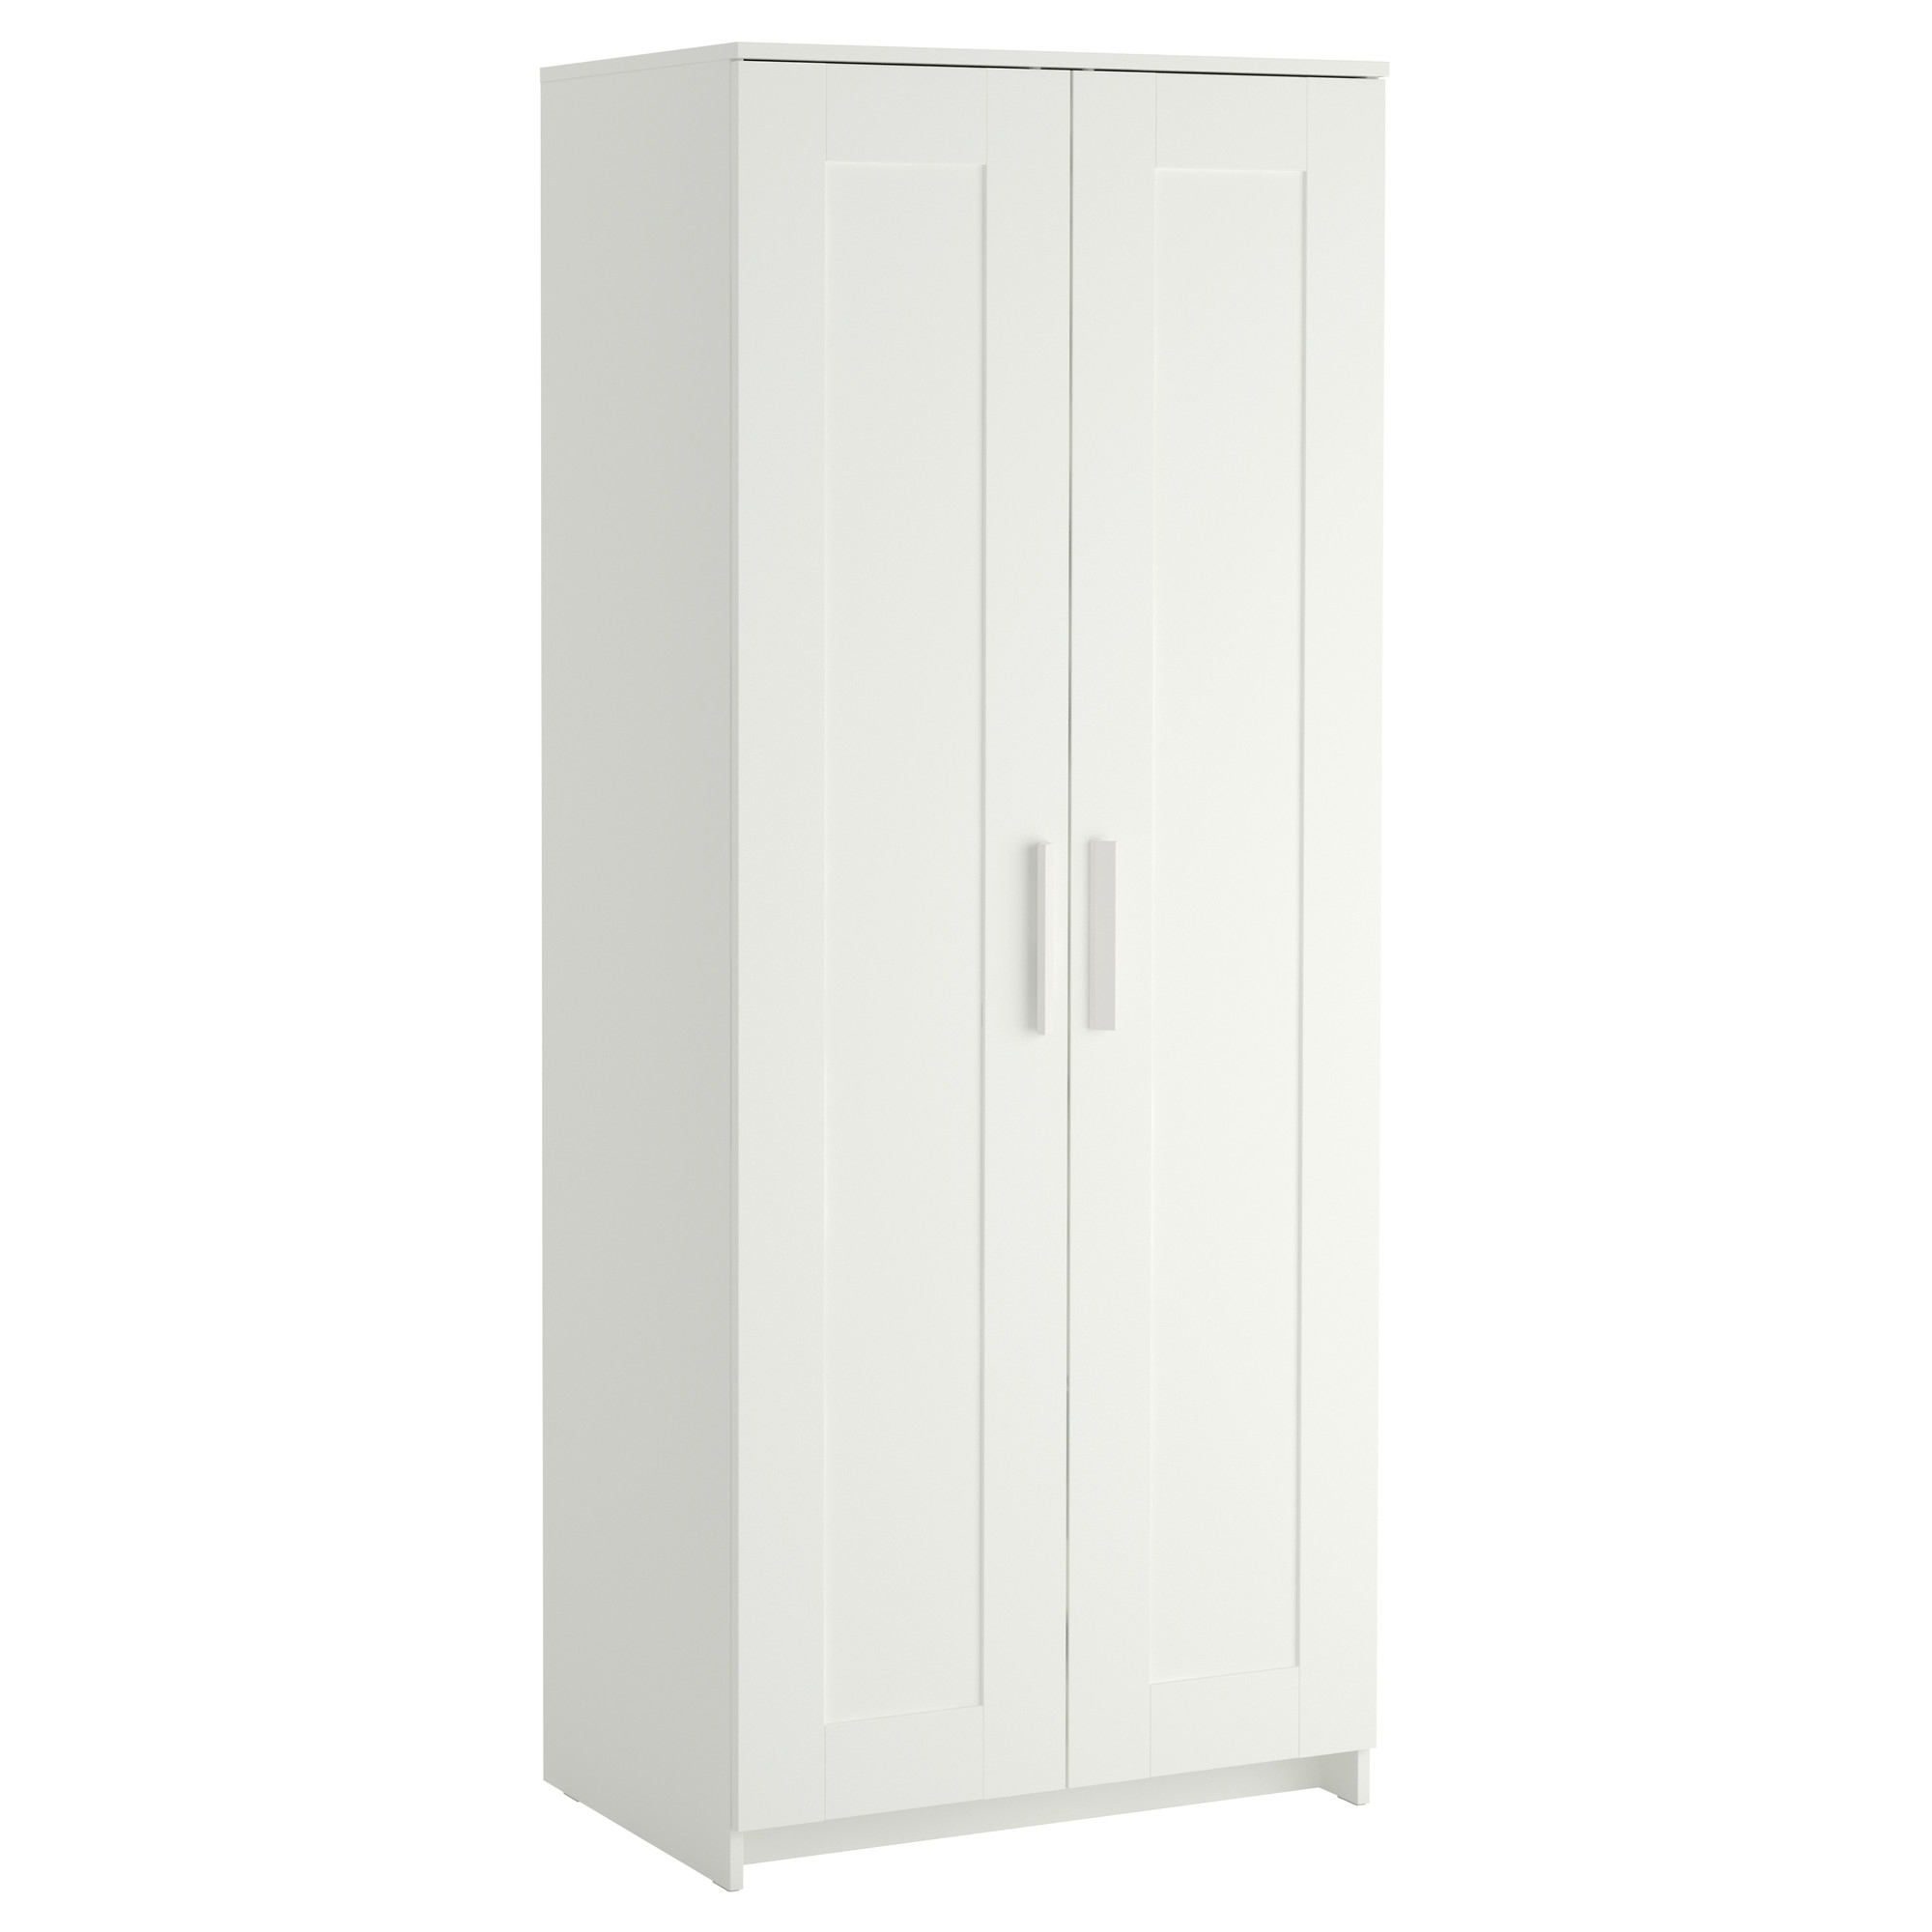 Favorite Small Wardrobes Intended For Brimnes Wardrobe With 2 Doors White 78X190 Cm – Ikea (View 4 of 15)